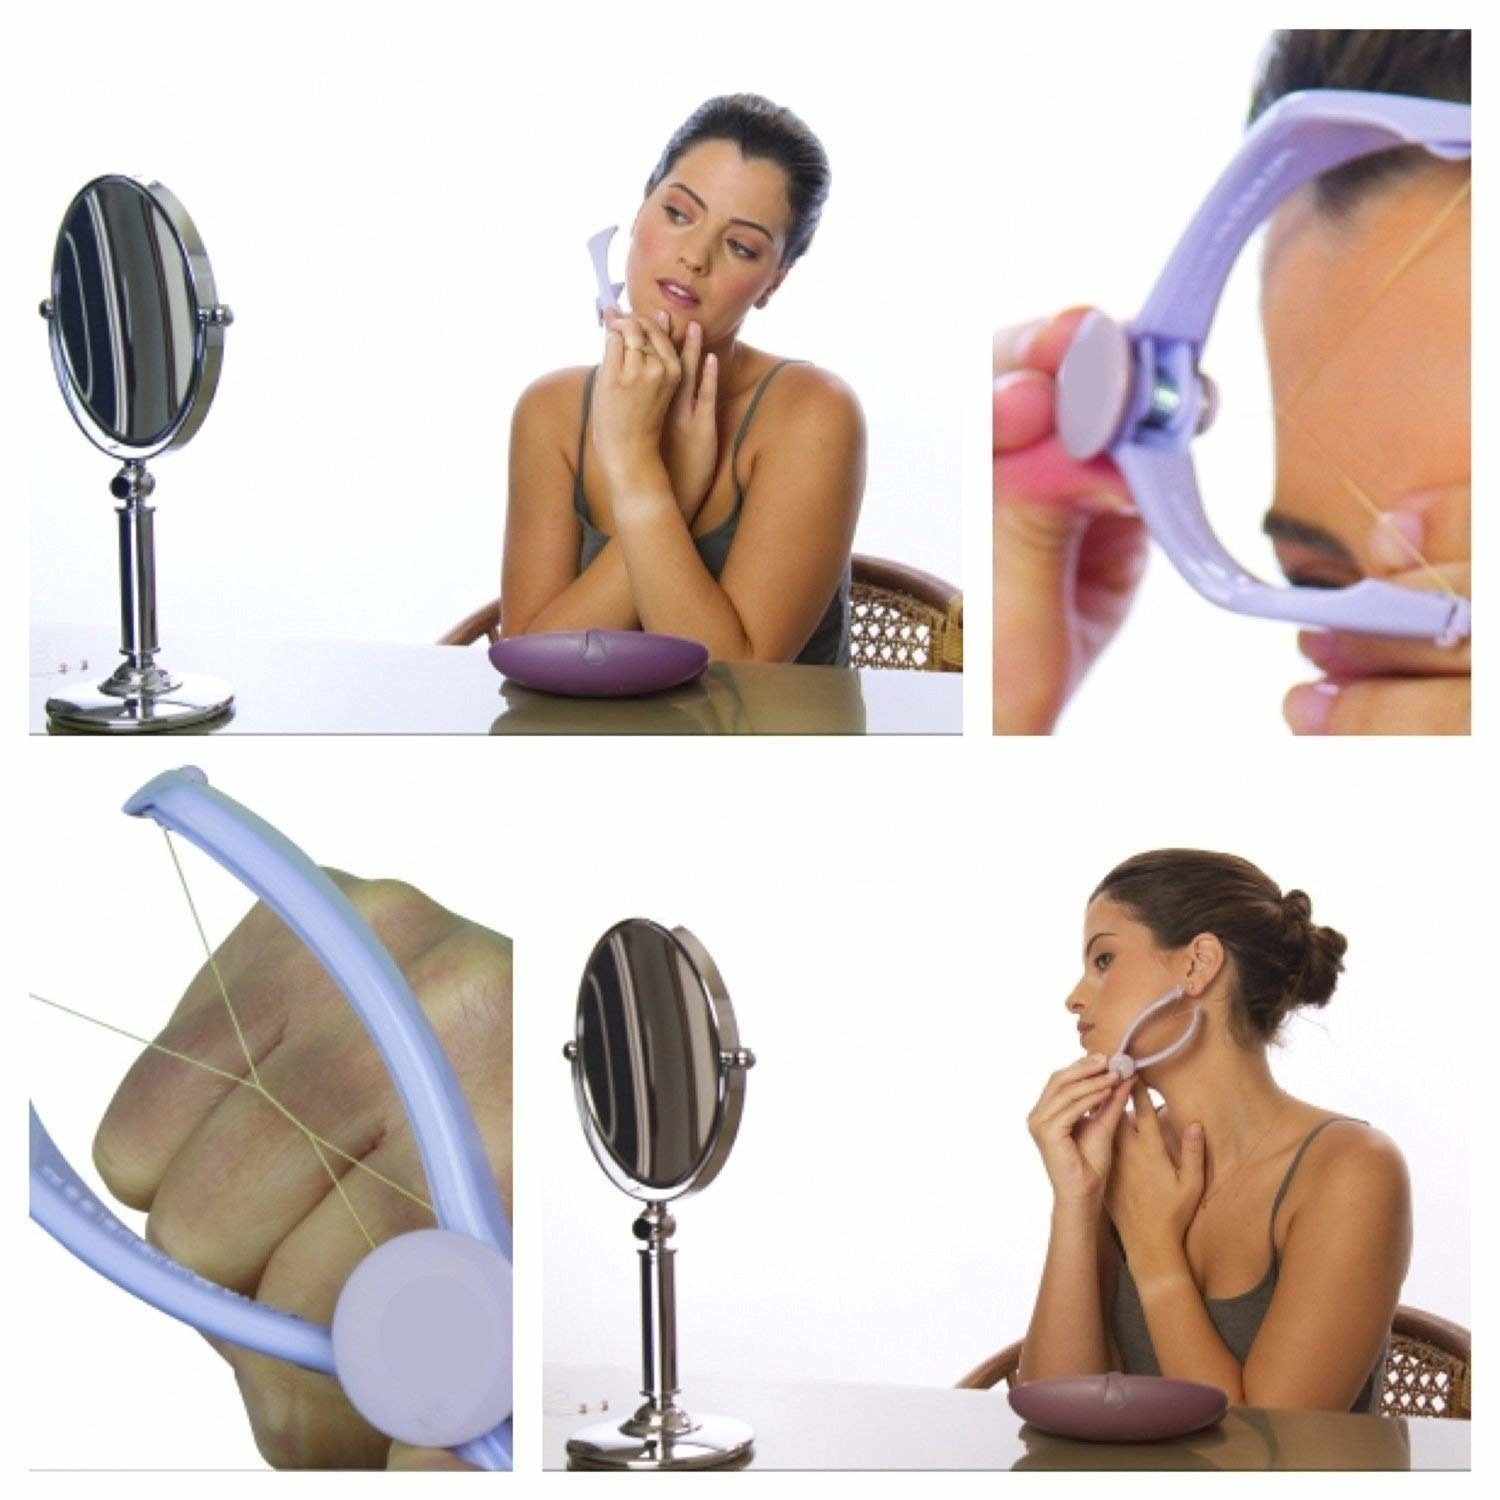 A person removing hair on various areas of her face and body, such as face and knuckles.